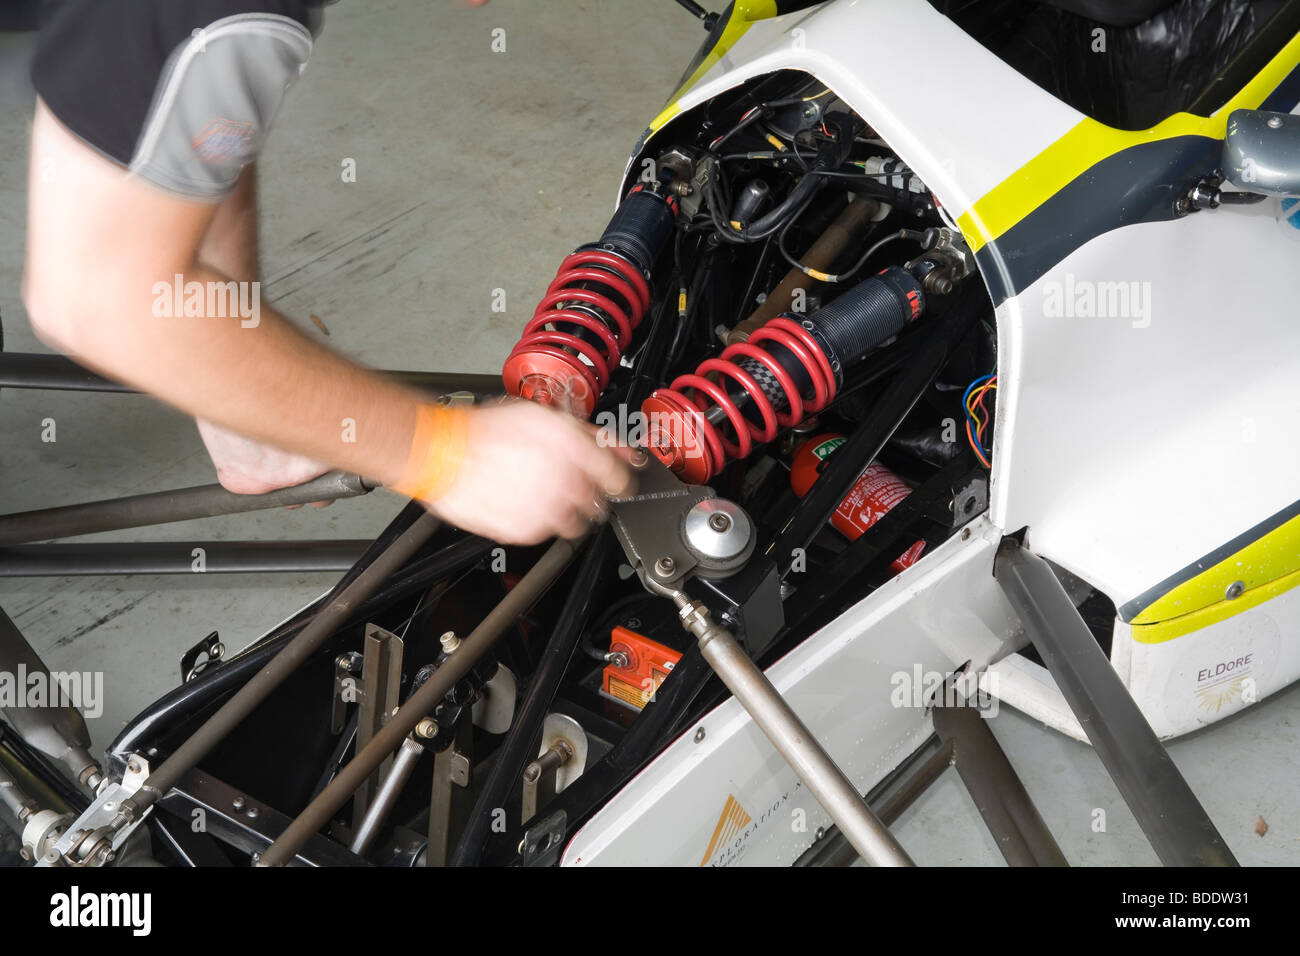 Hands of mechanic working on shock absorber setup on an open